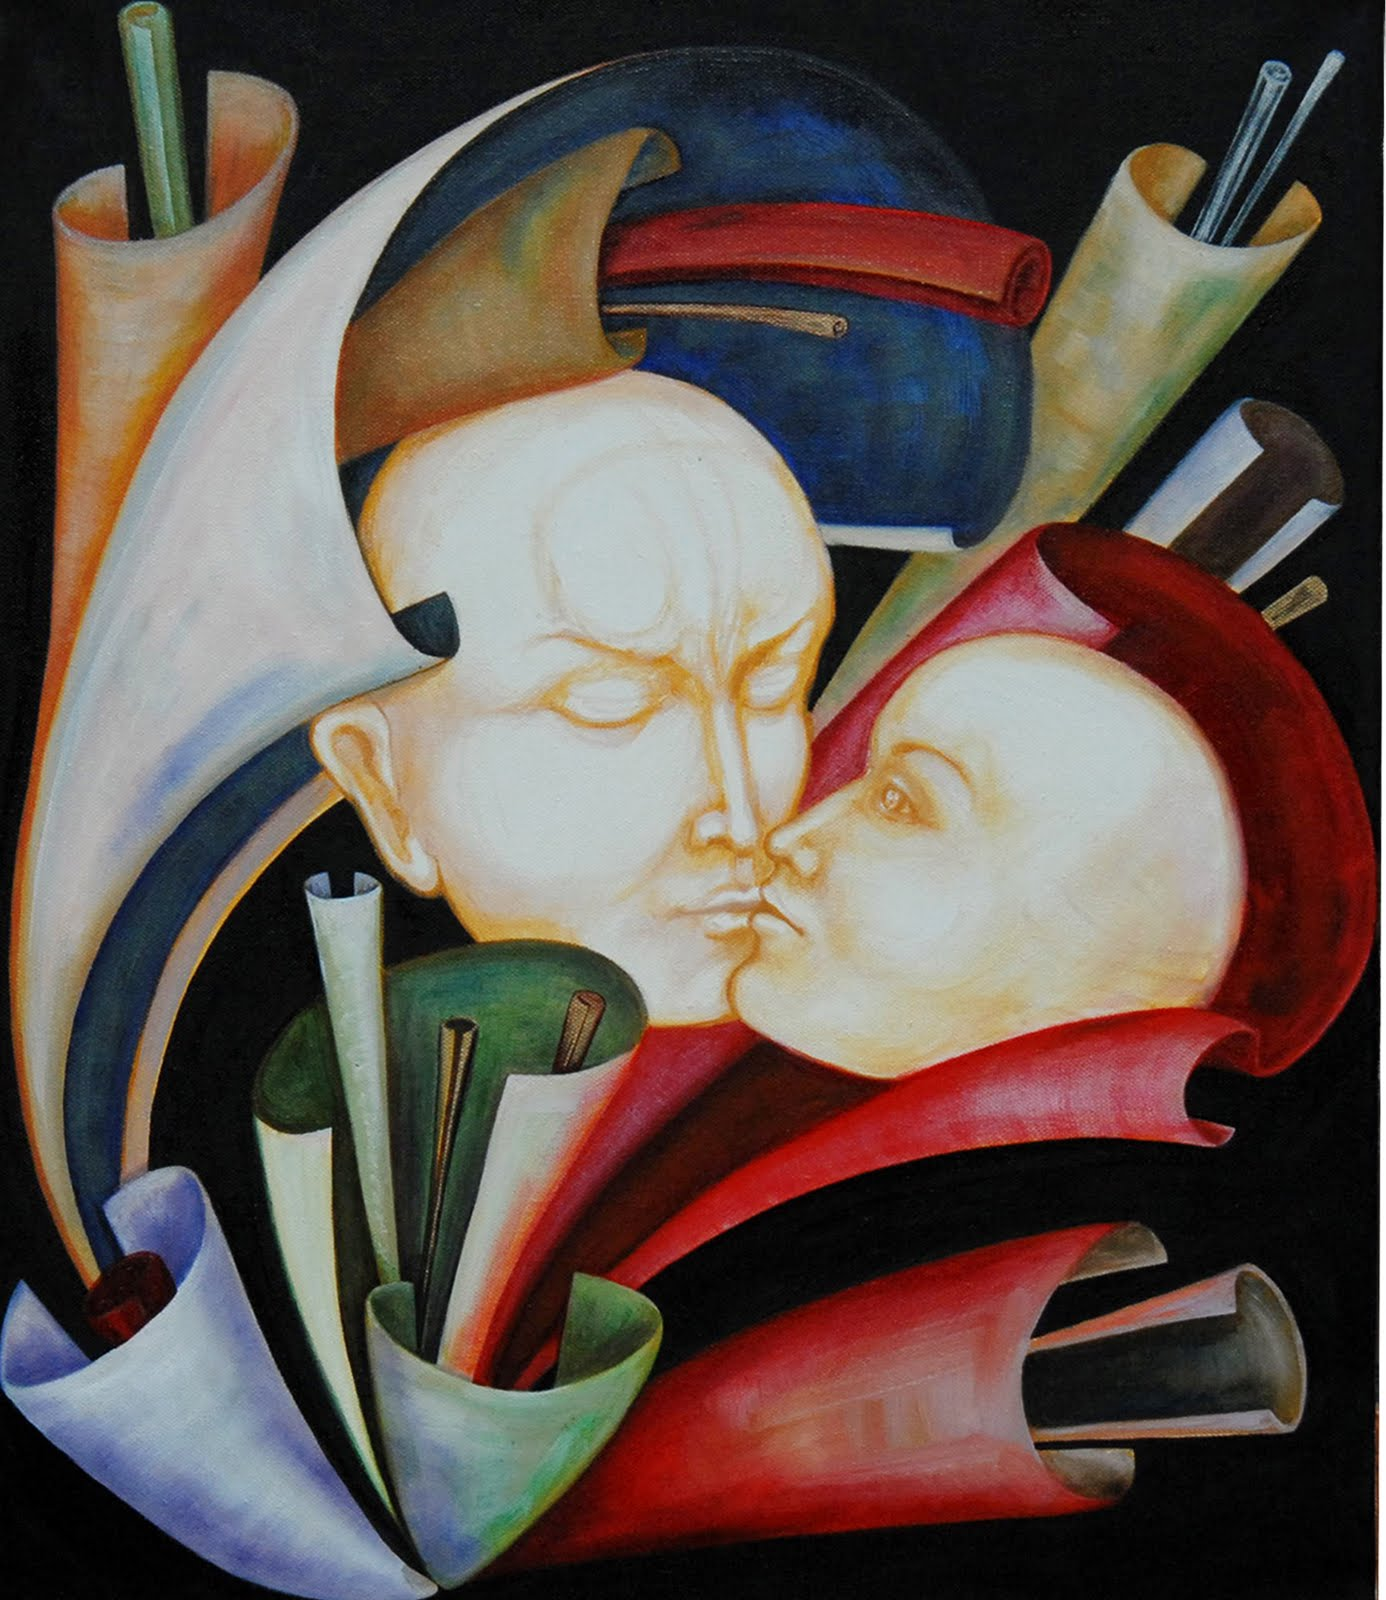 Love Paintings - Geometry of Love | Oil Painting Gallery